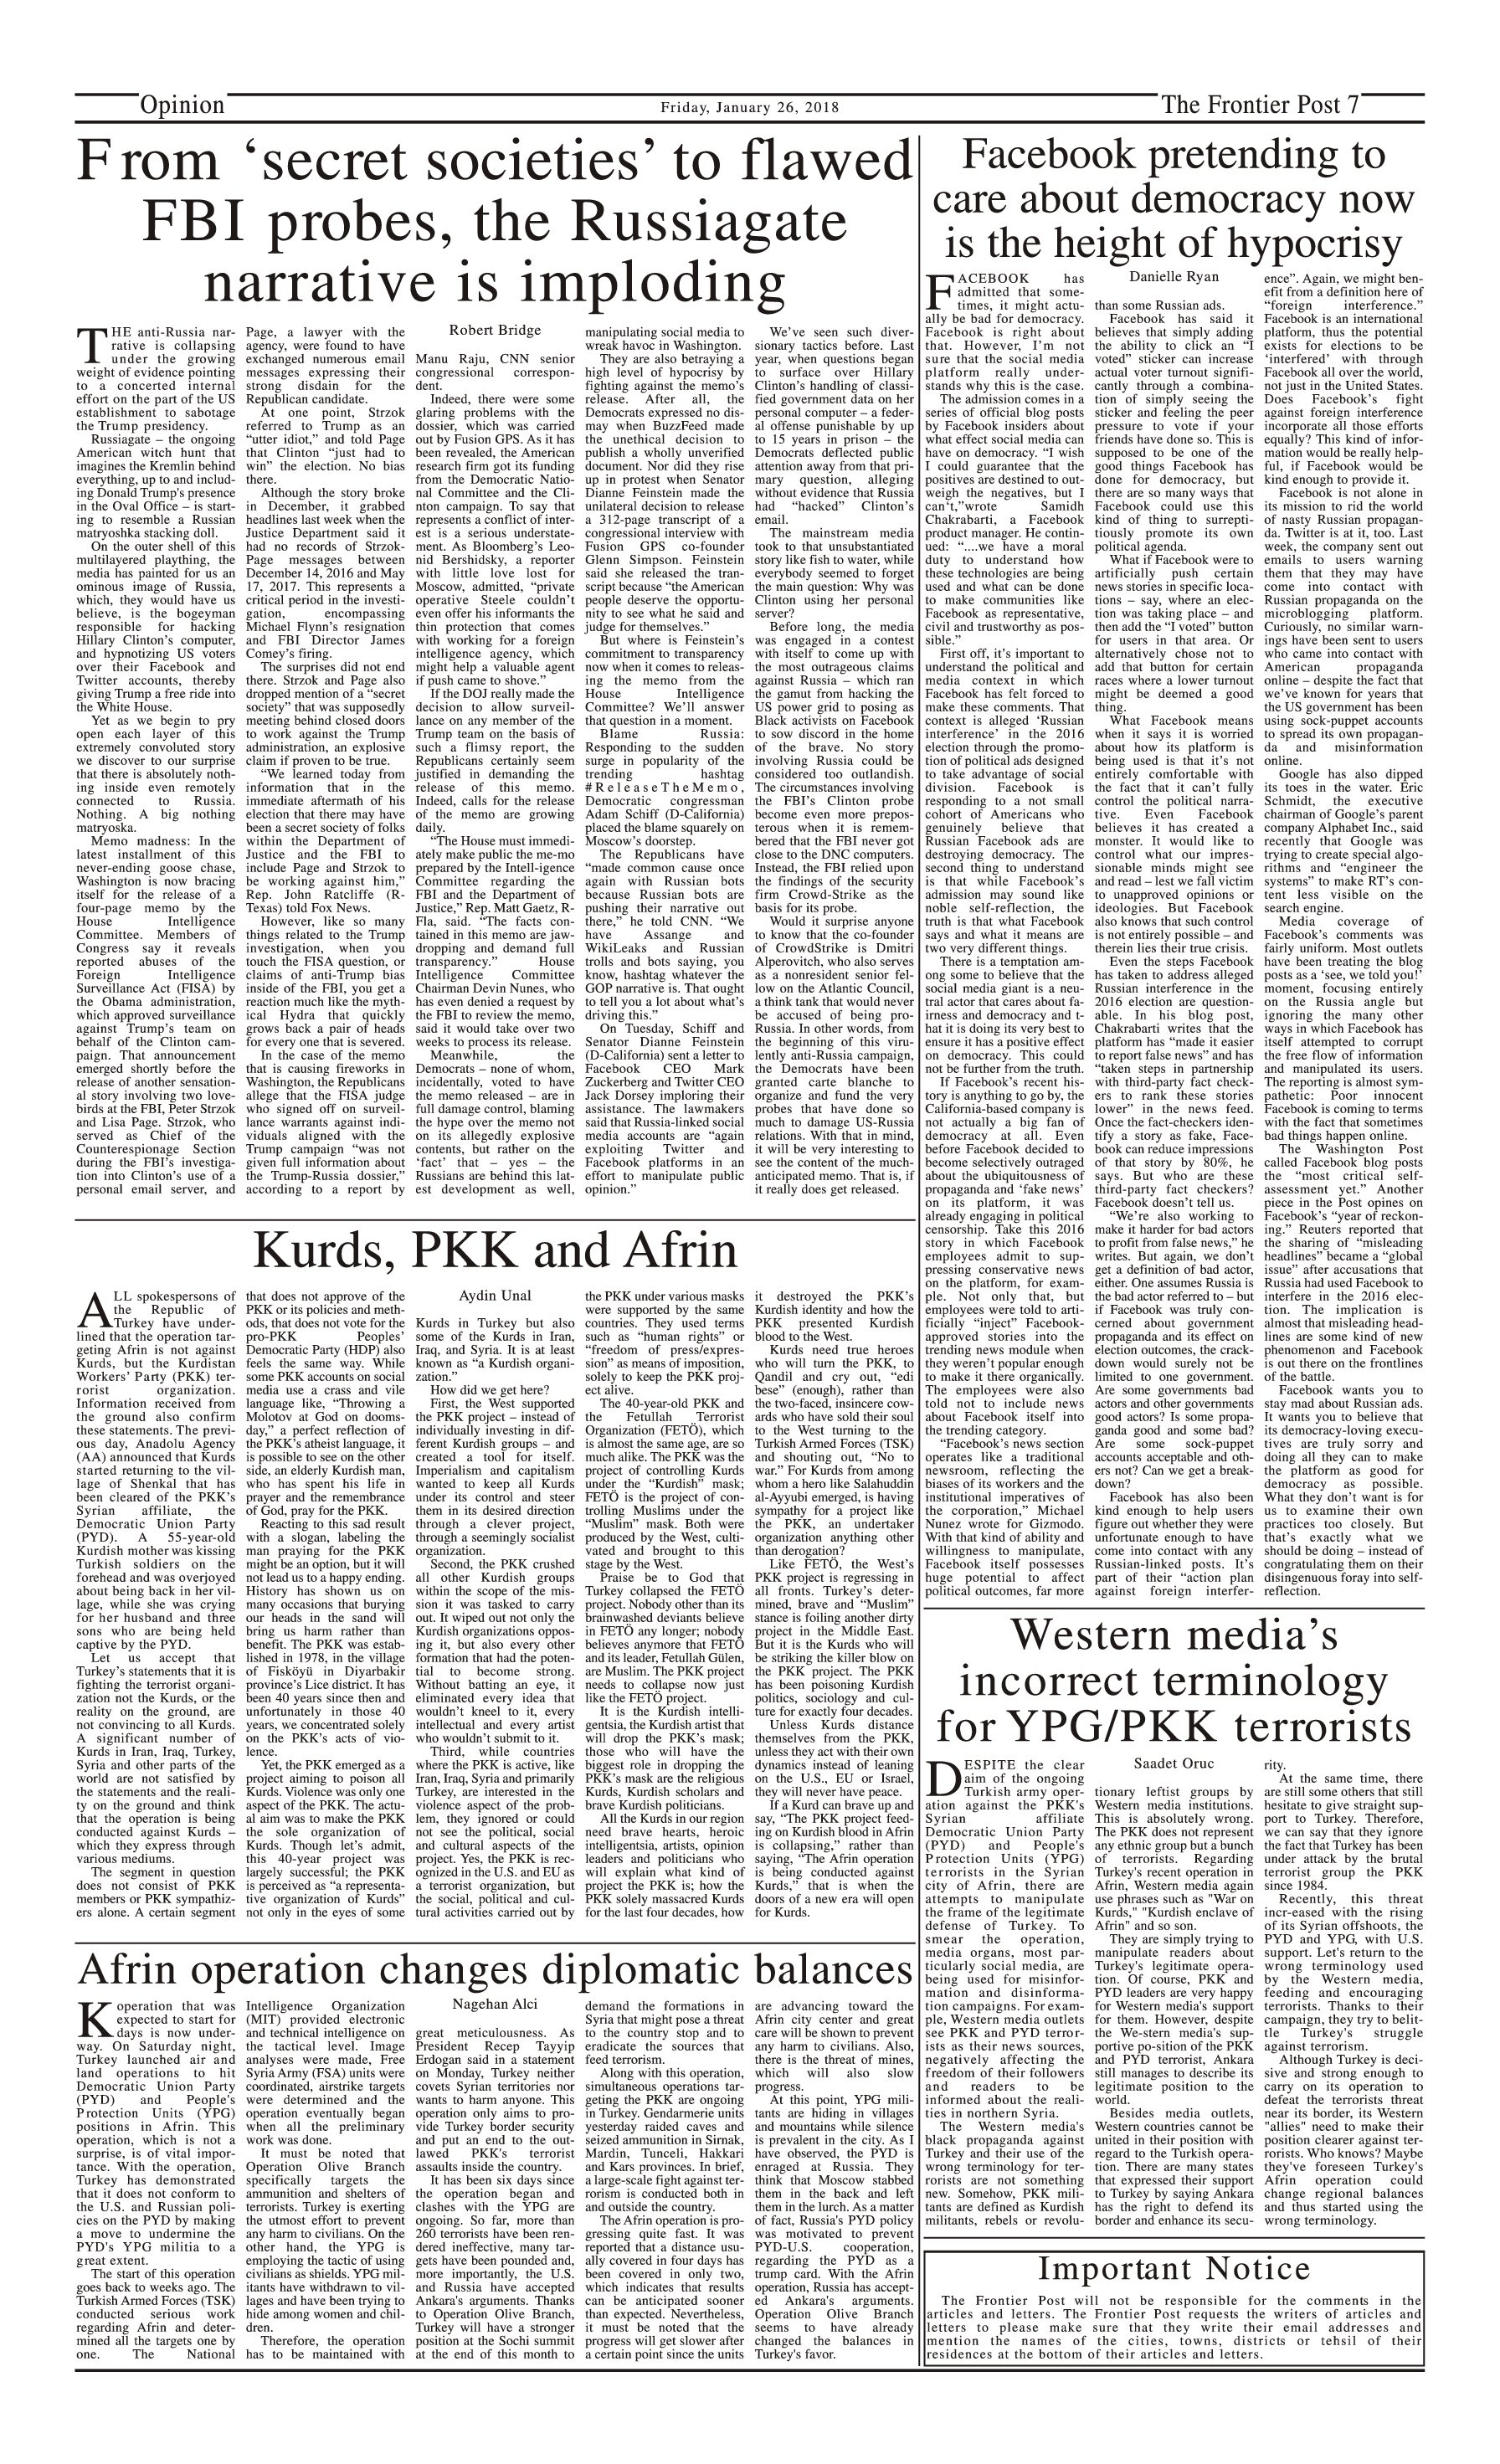 Opinion Page 26-1